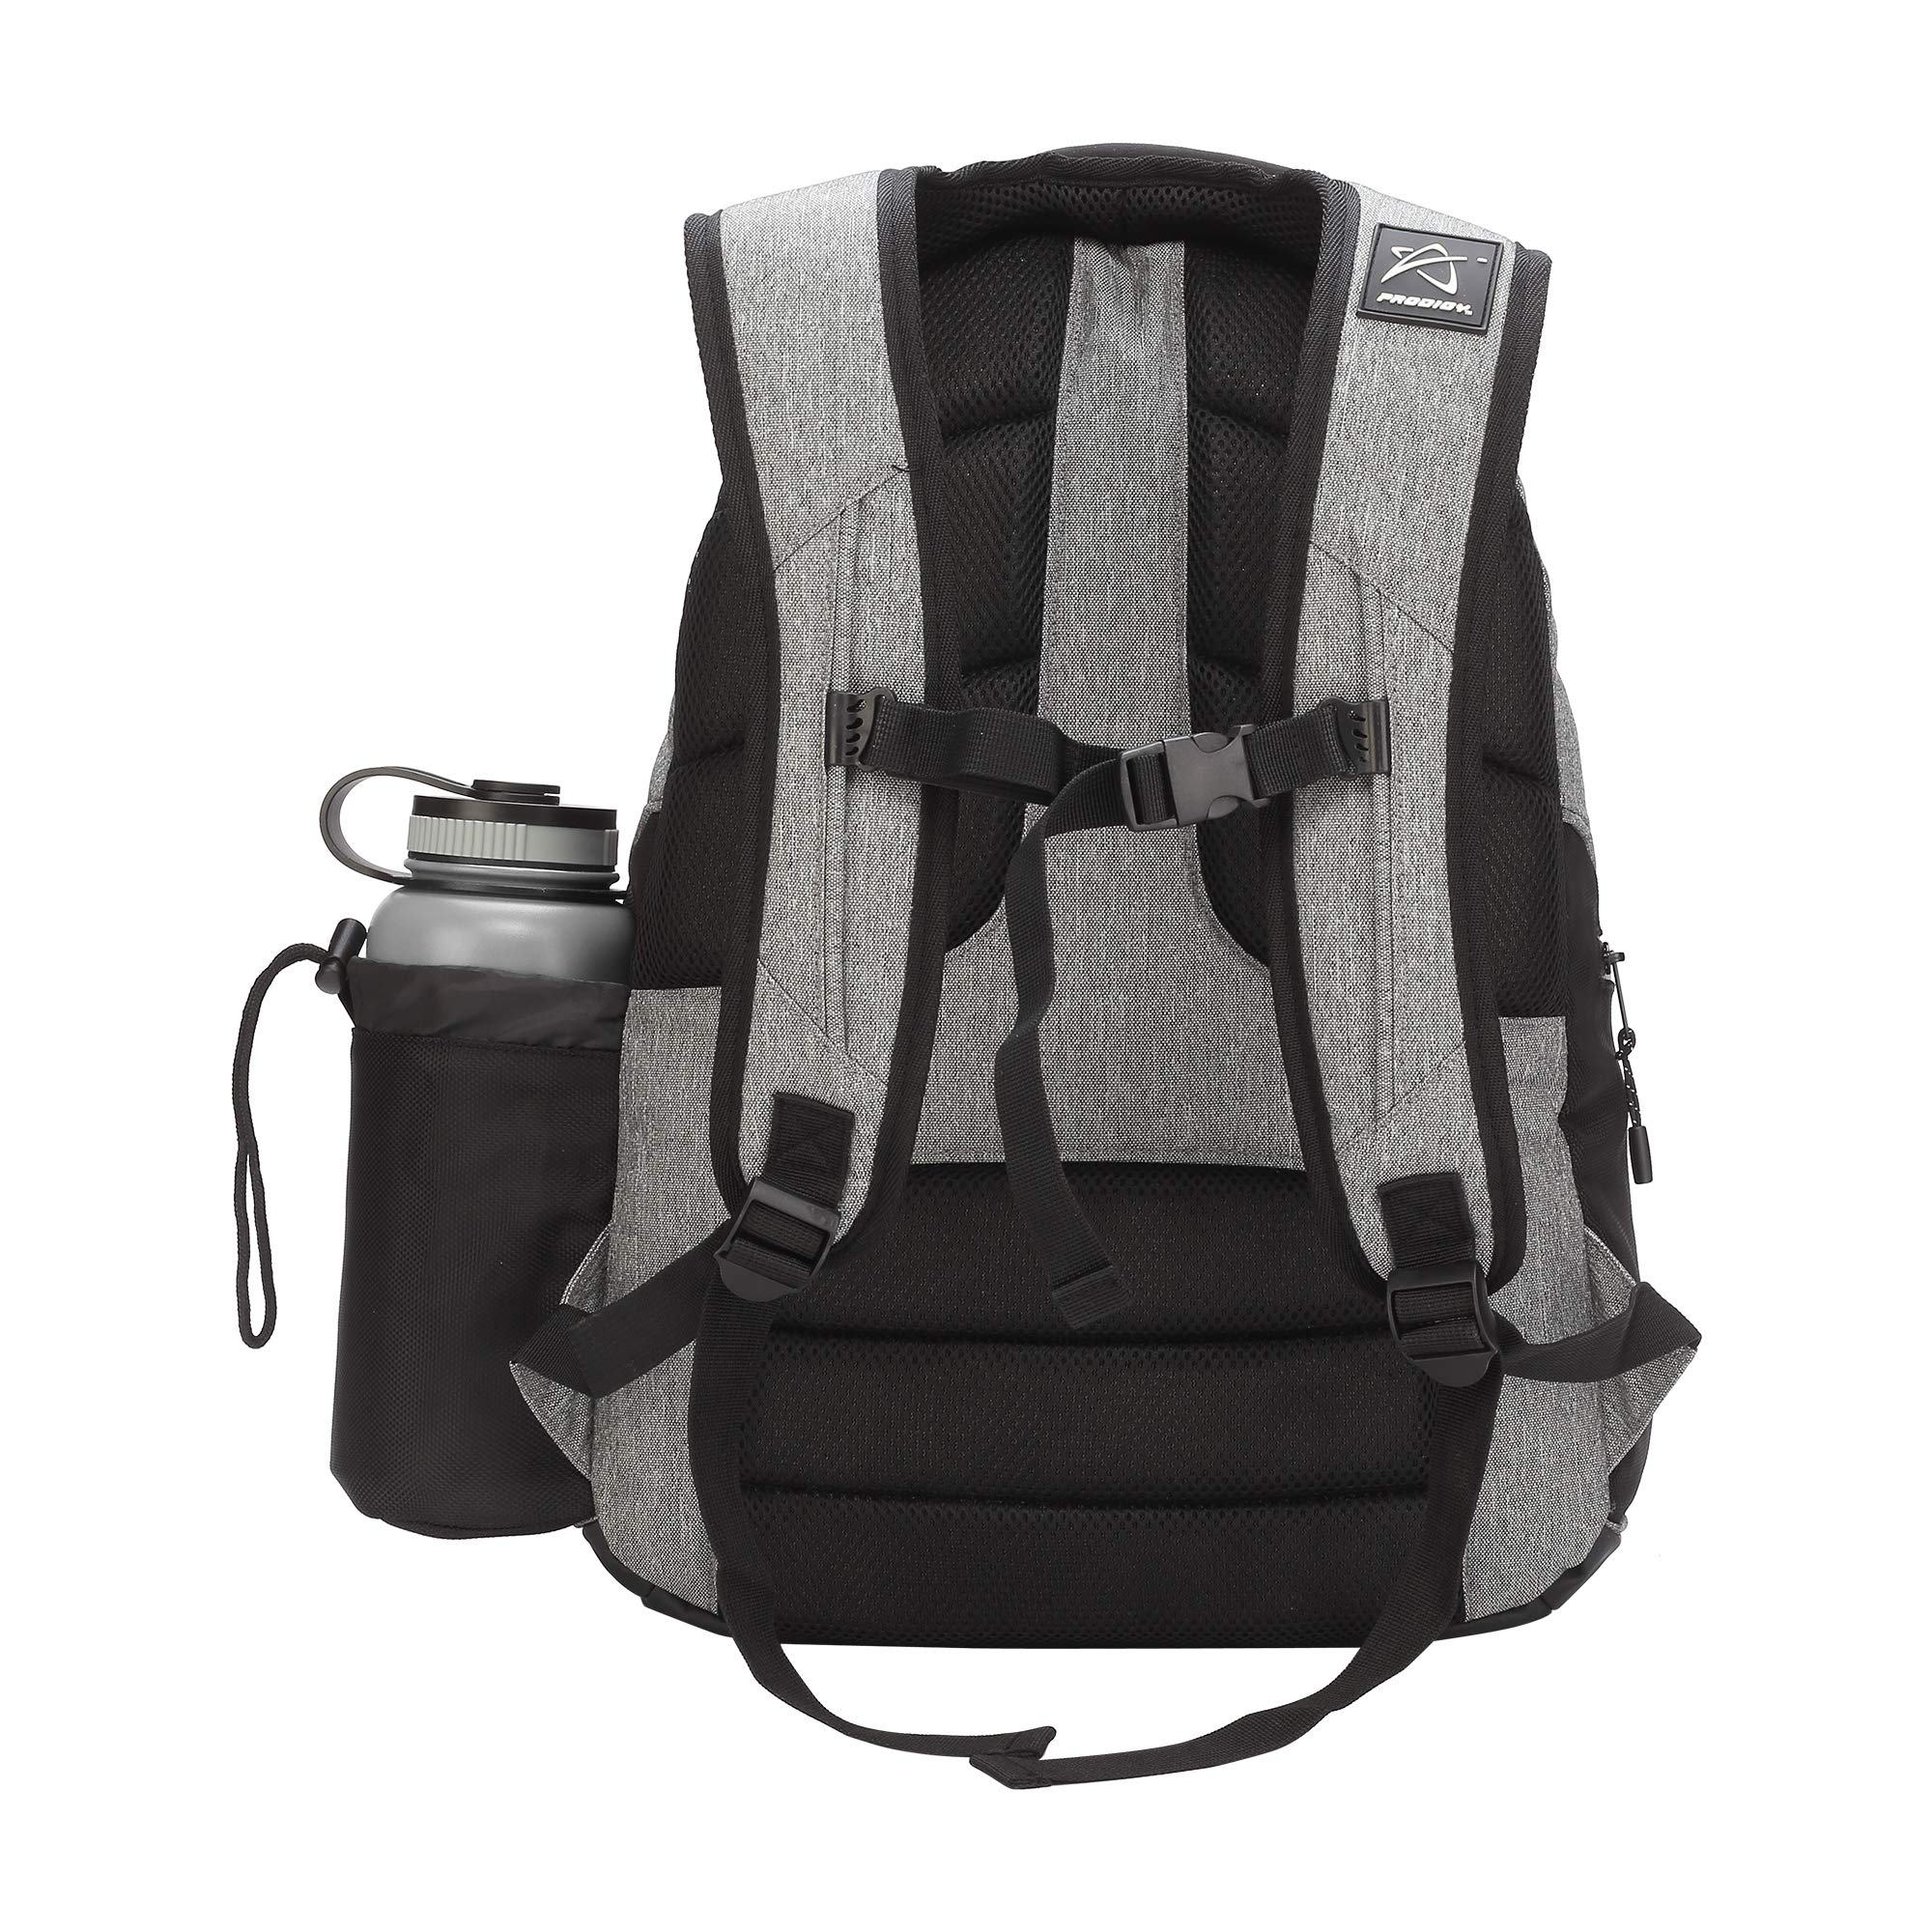 Prodigy Disc BP-3 V2 Disc Golf Backpack - Fits 17 Discs - Beginner Friendly, Affordable (Heather Gray/Black) by Prodigy Disc (Image #2)